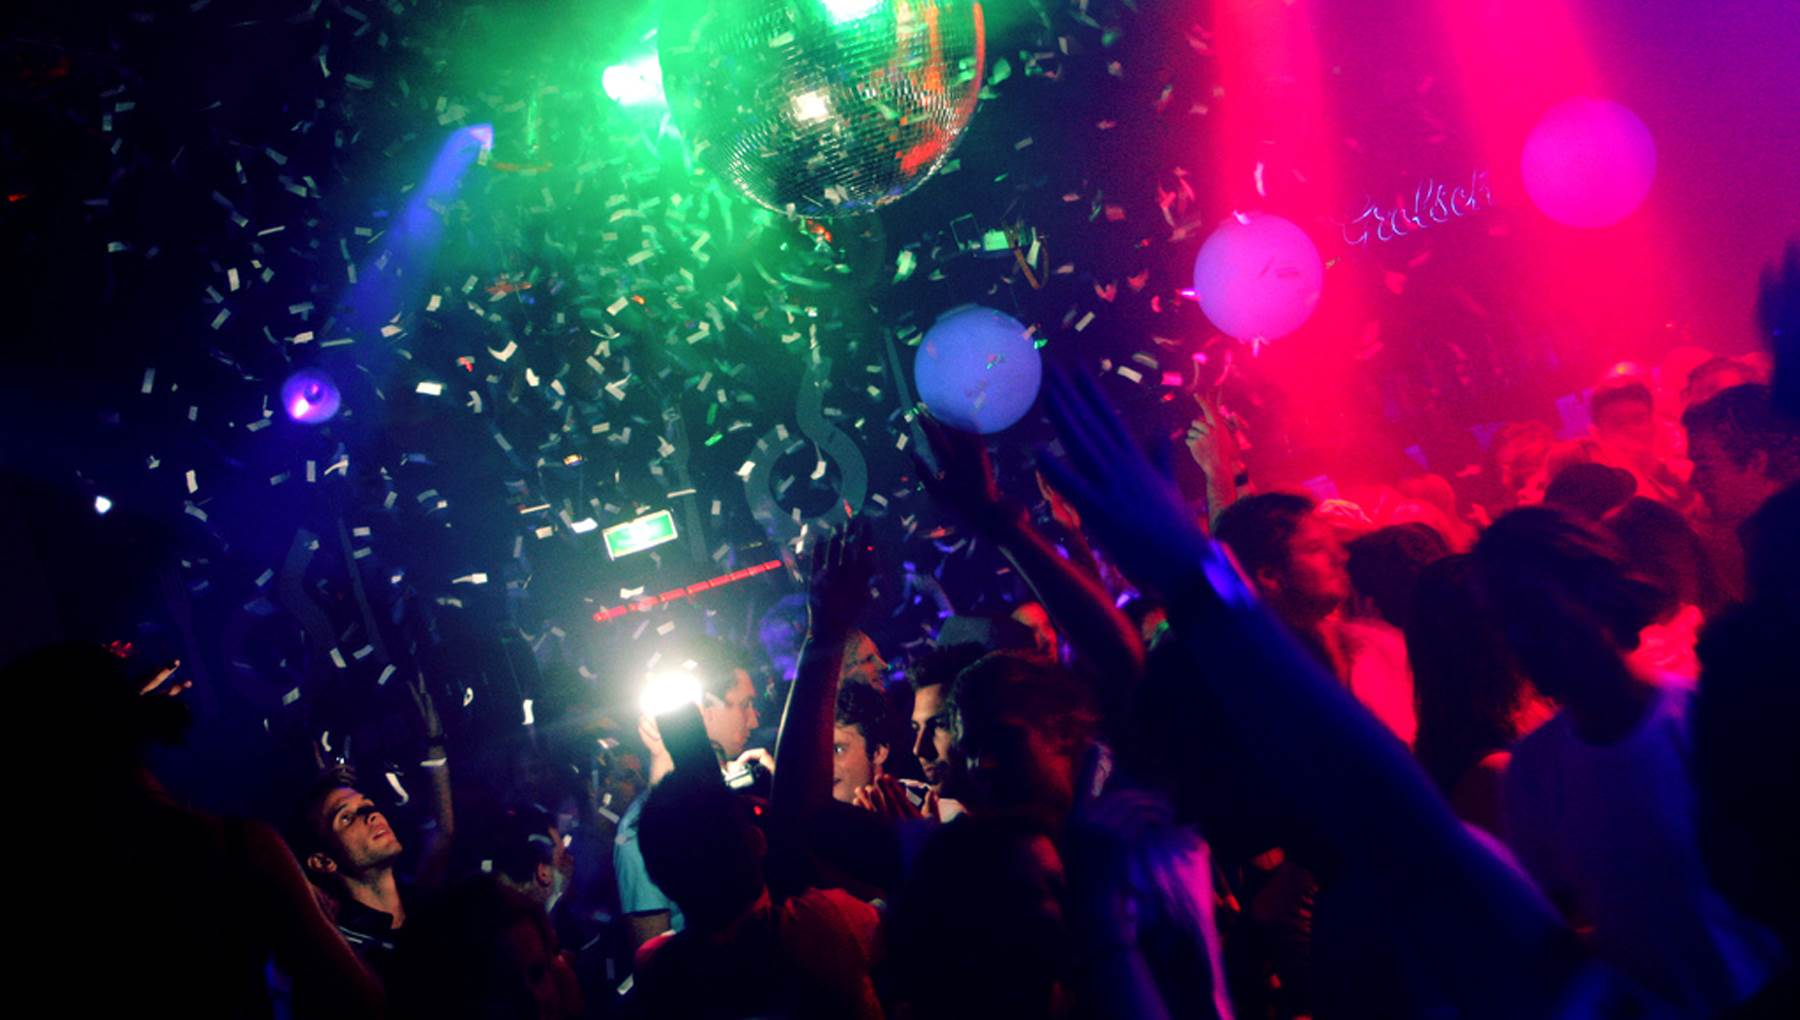 Clubbing Nightlife In Amsterdam I Amsterdam - Party time worlds most amazing nightlife cities